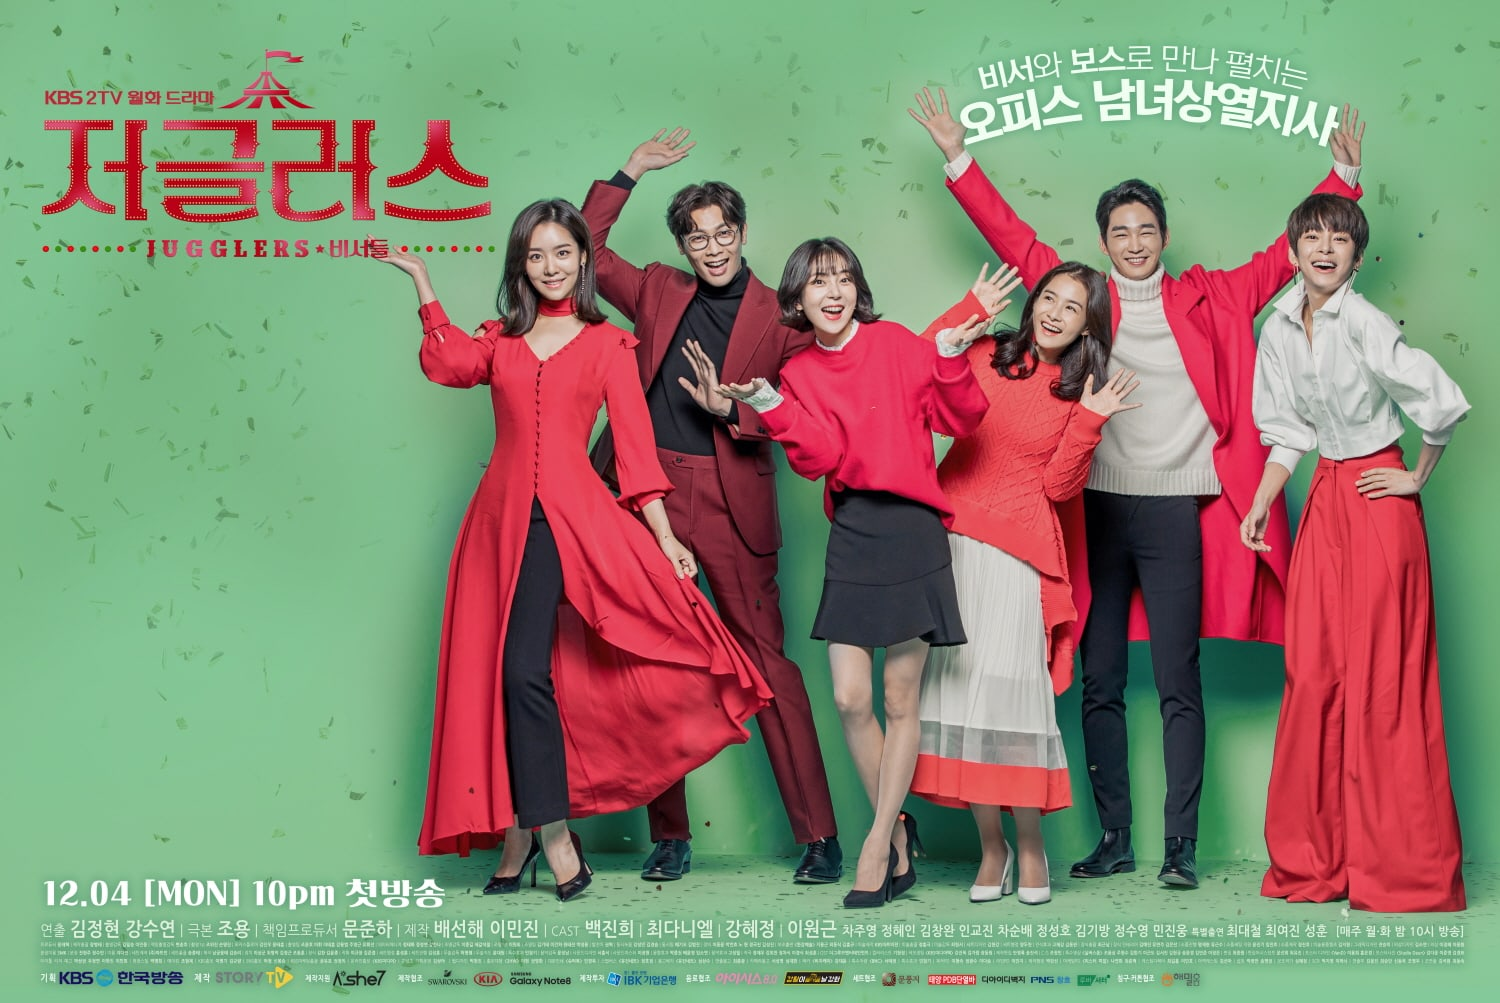 """Jugglers"" Jumps Ahead Of Its Competition With New Increase In Viewership Ratings"